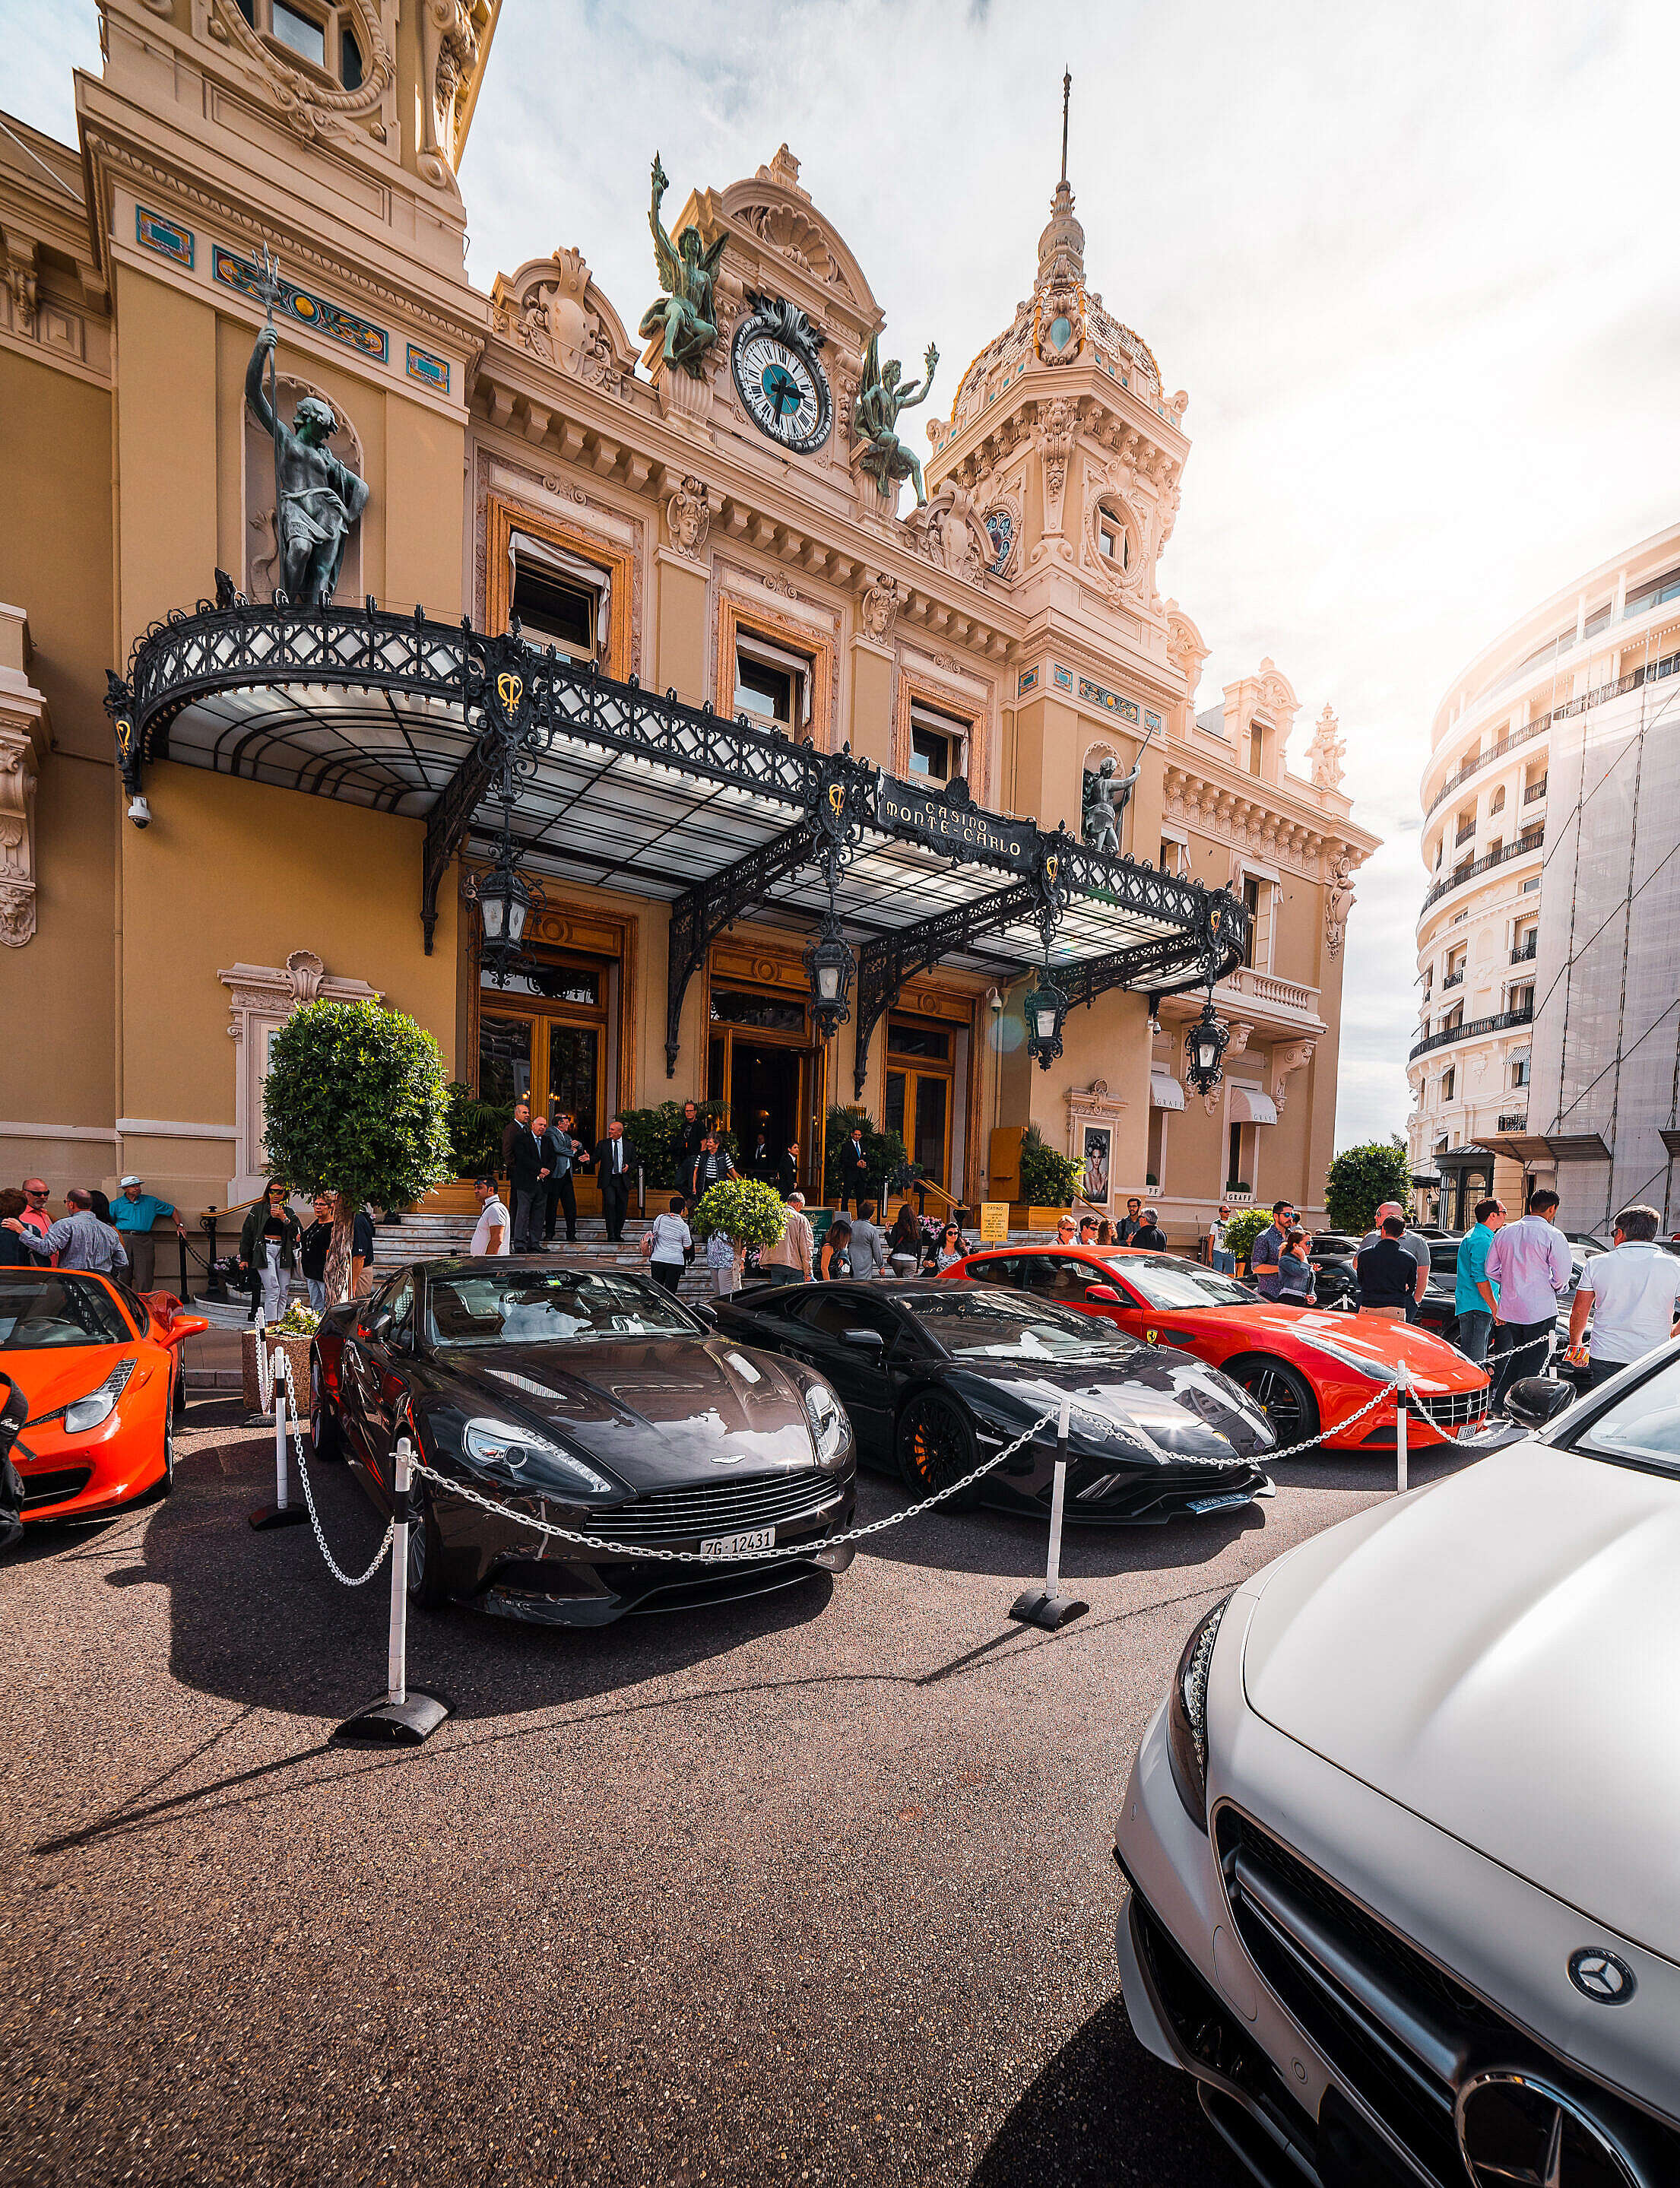 Luxury Cars and Tourists in front of Monaco Casino Free Stock Photo